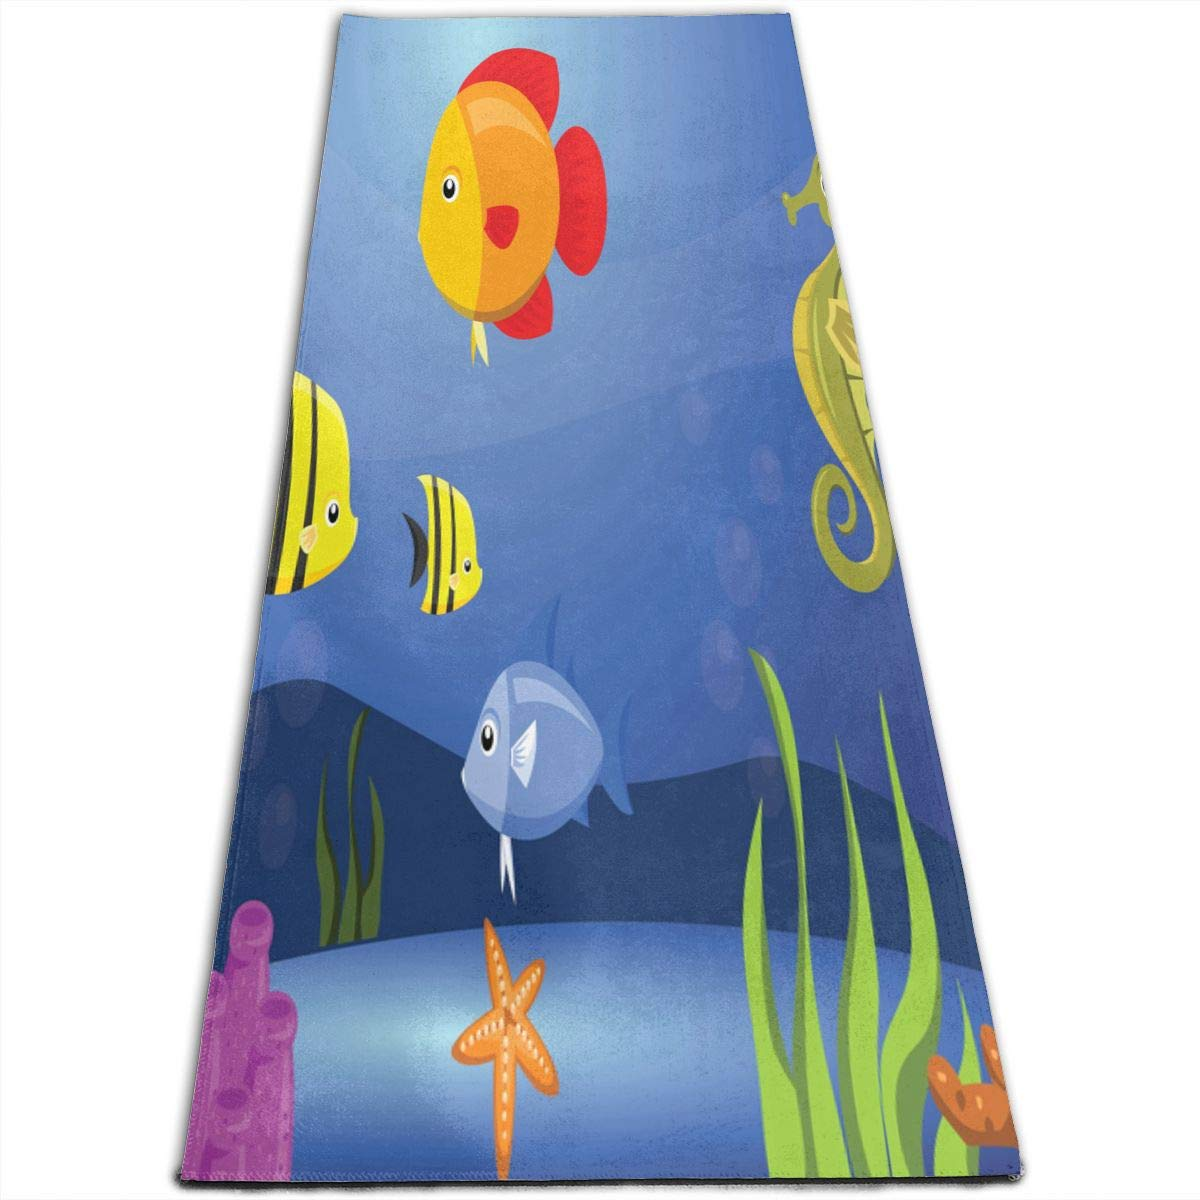 Amazon.com: Yoga Mat Seahorse And Fish Hot 1/4-Inch Thick ...